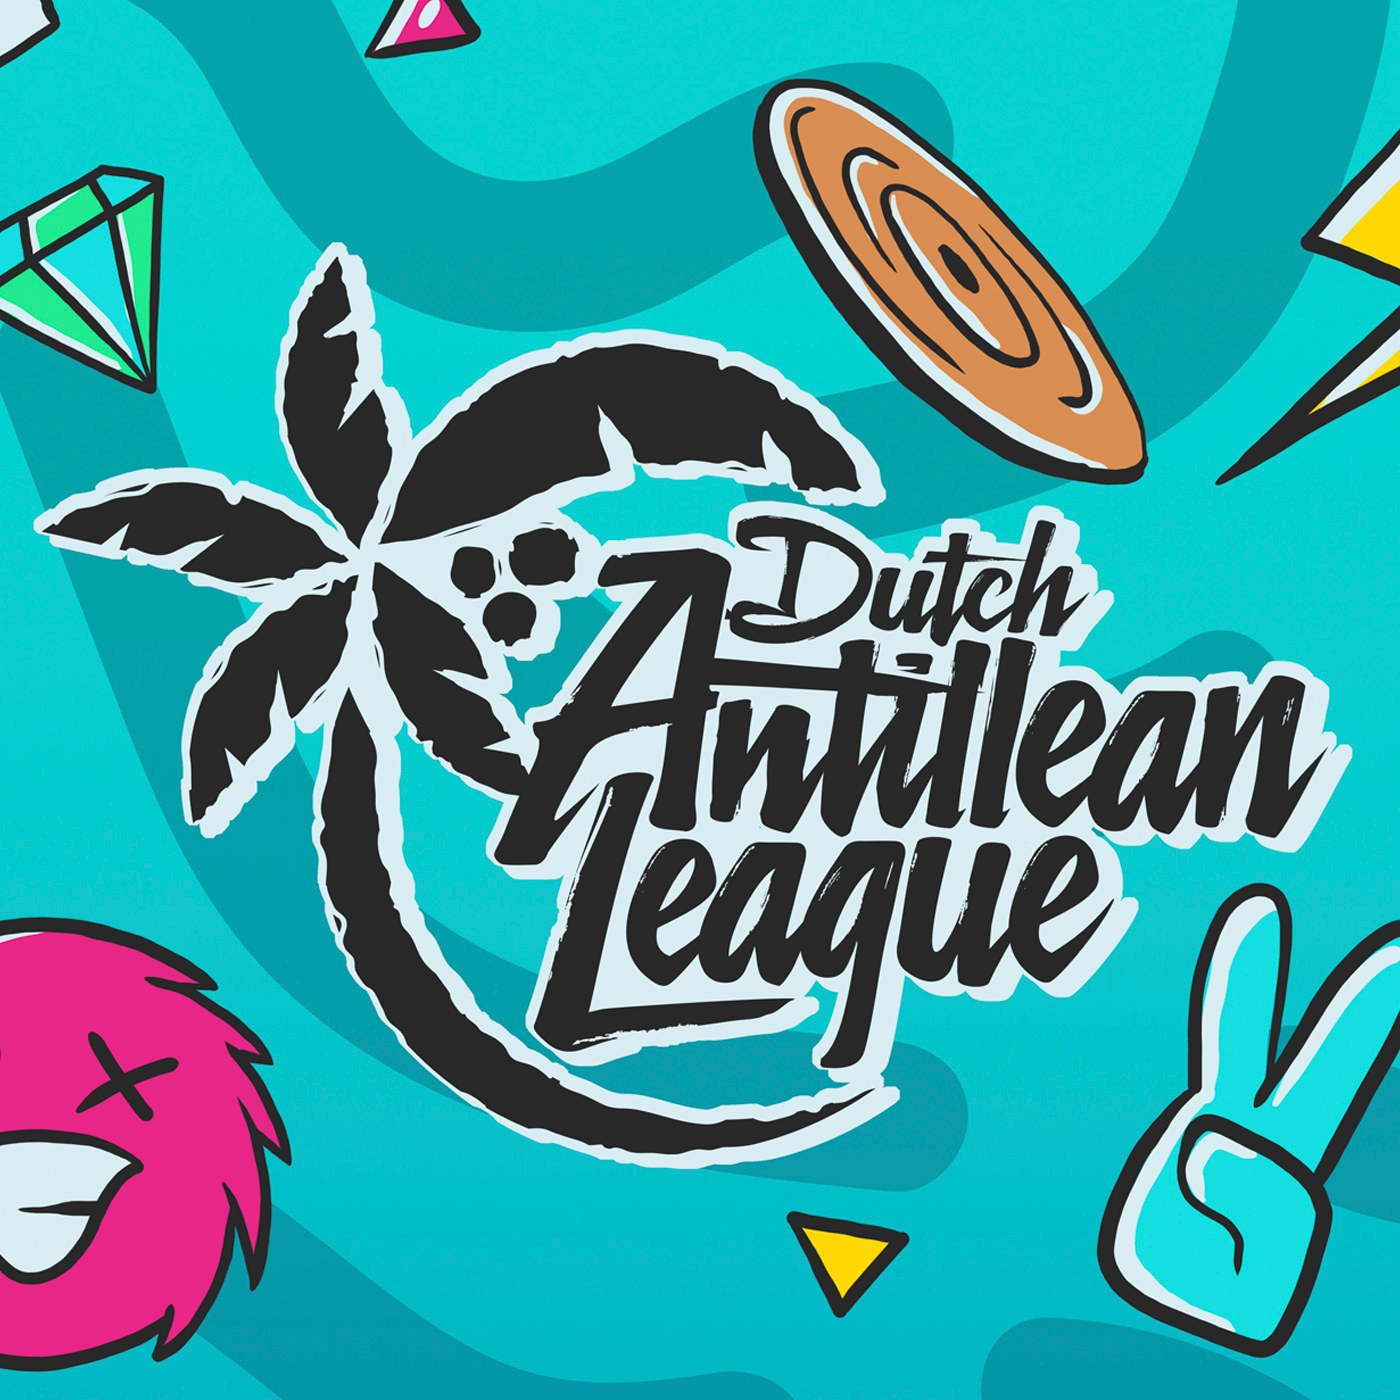 Dutch, Antillean League